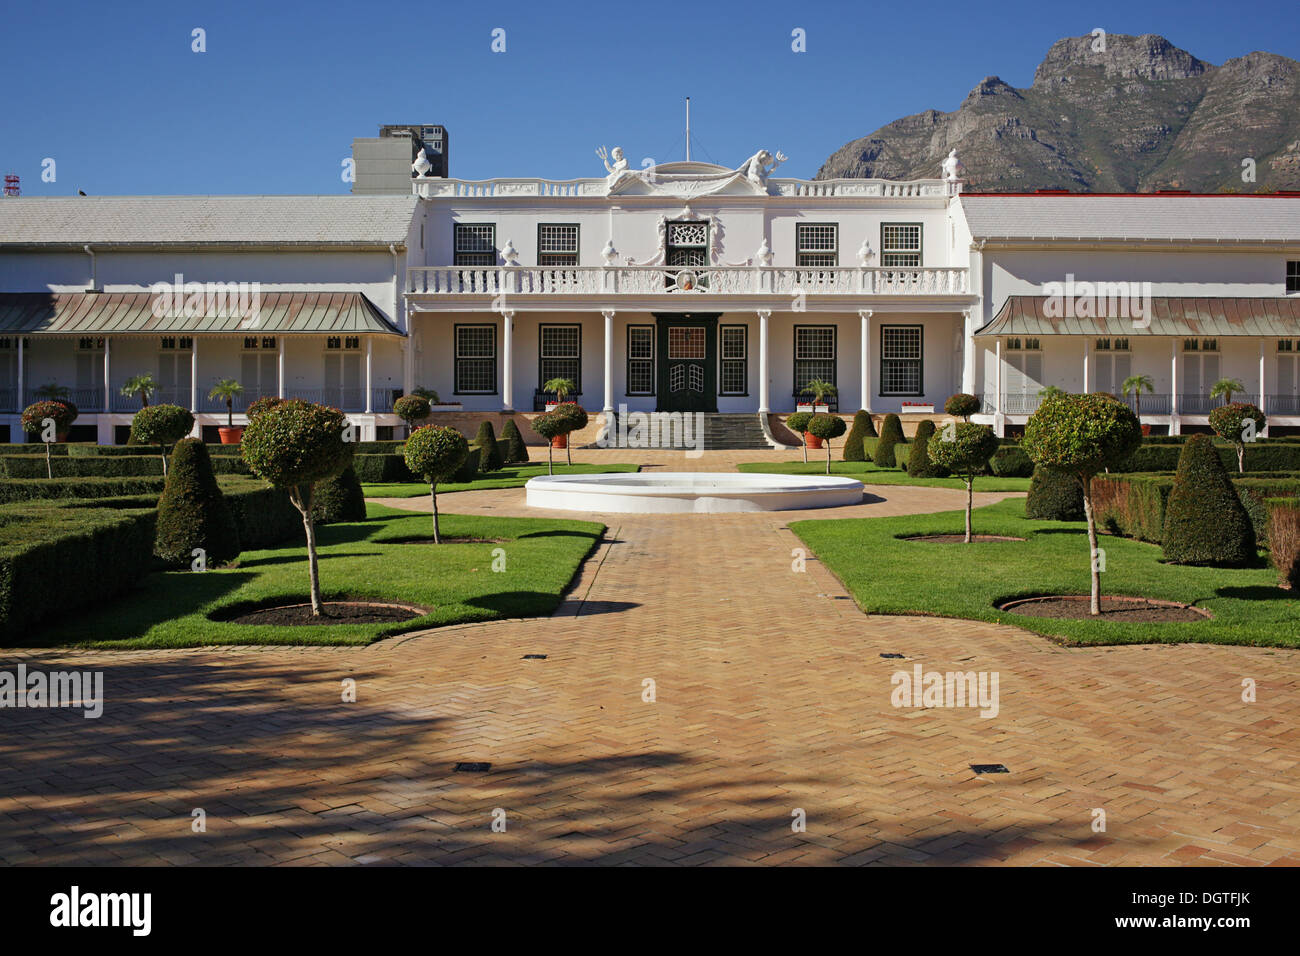 De Tuynhuys @ The Company's Garden in Cape Town - Stock Image